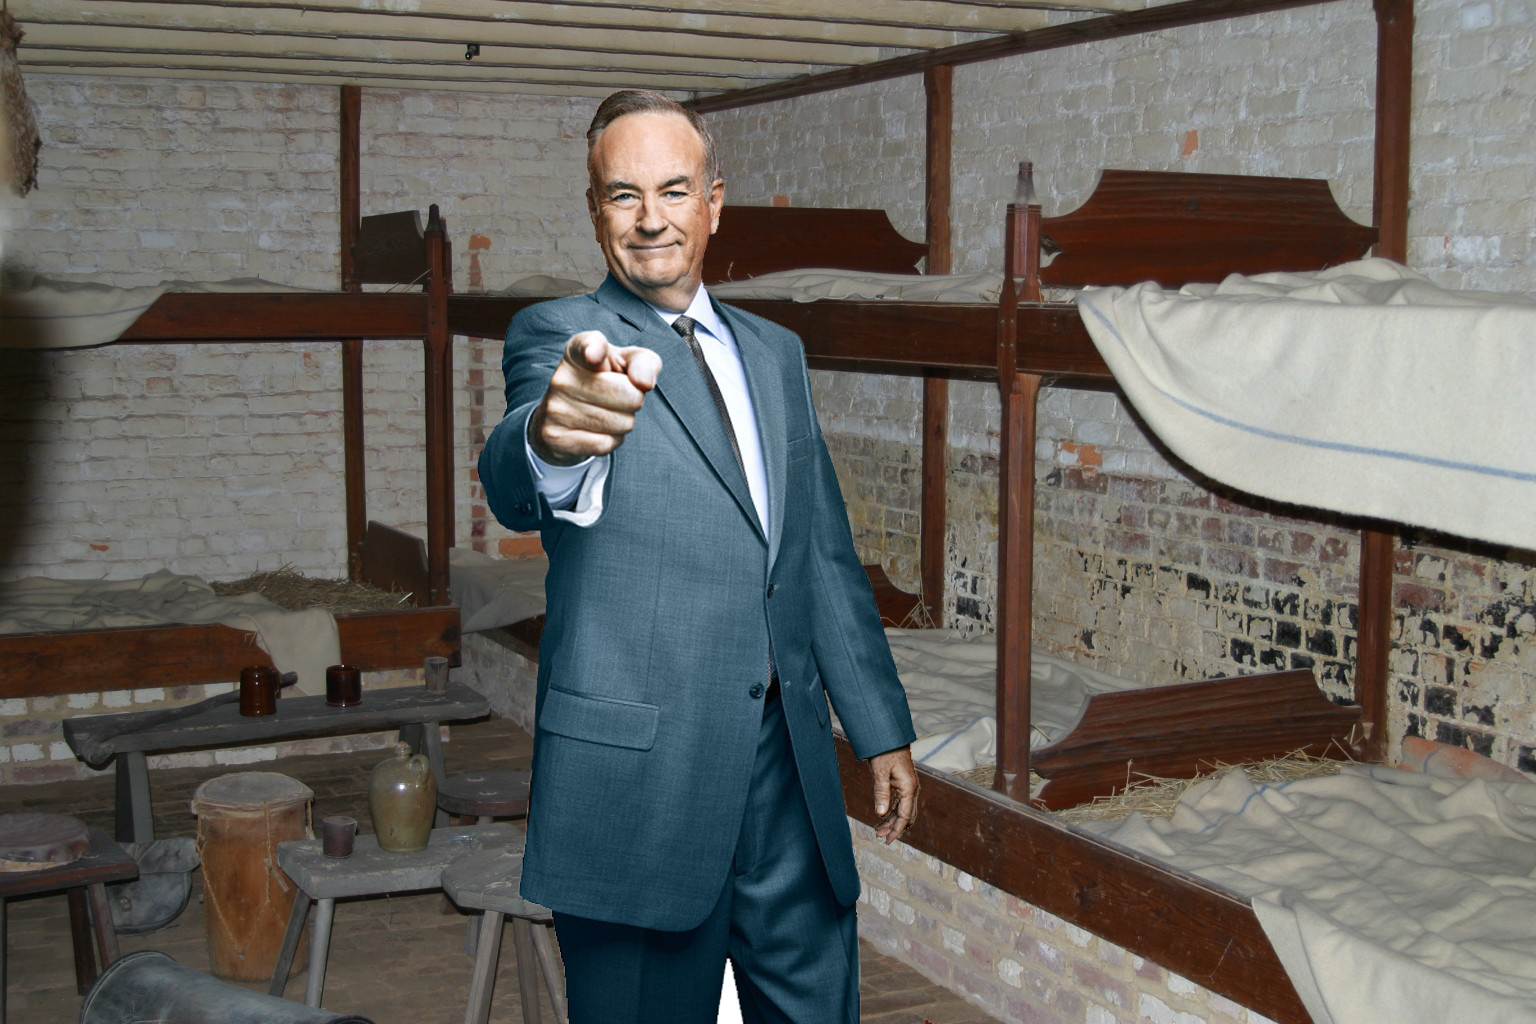 Bill O'Reilly enjoyed his plantation orientation. He looks forward to doing a little 'hard work' tomorrow.